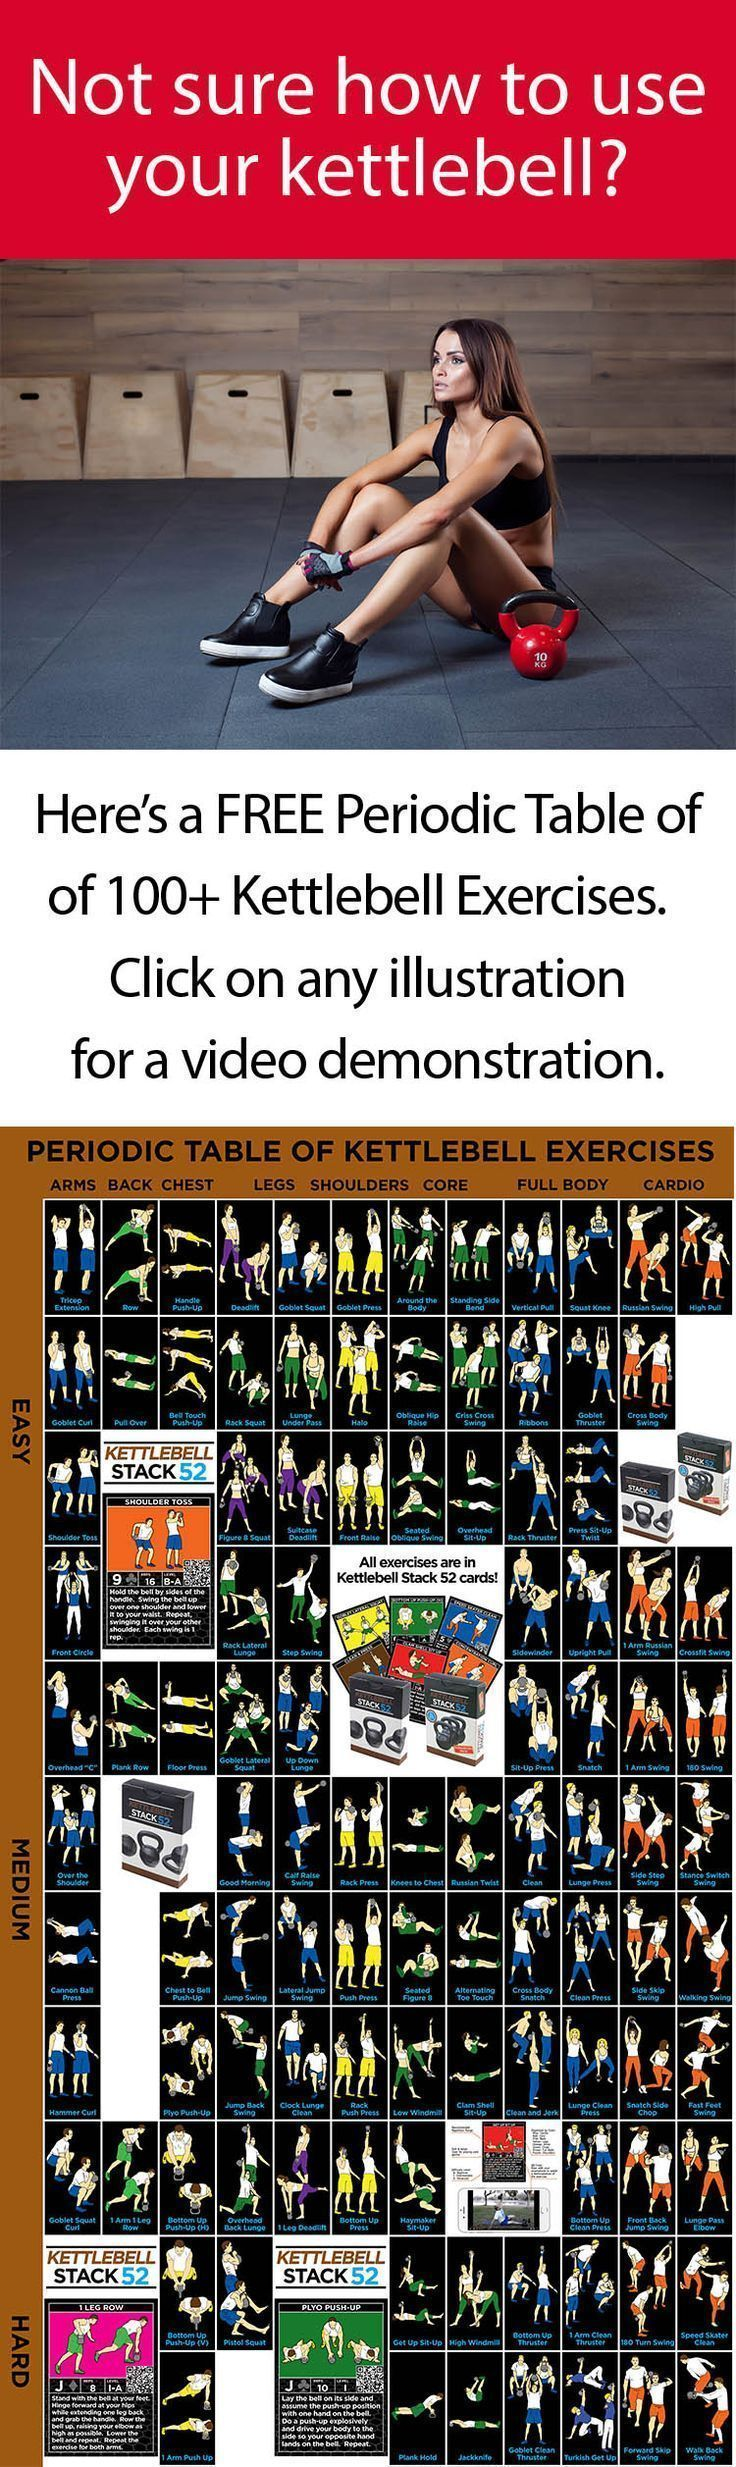 This free Periodic Table of Kettlebell Exercises has over 100 kettlebell exercises arranged by muscle group and difficulty.  Click on any exercise for a video demonstration!  http://strength.stack52.com/periodic-table-of-kettlebell-exercises/ #kettlebellexerciseforwomen